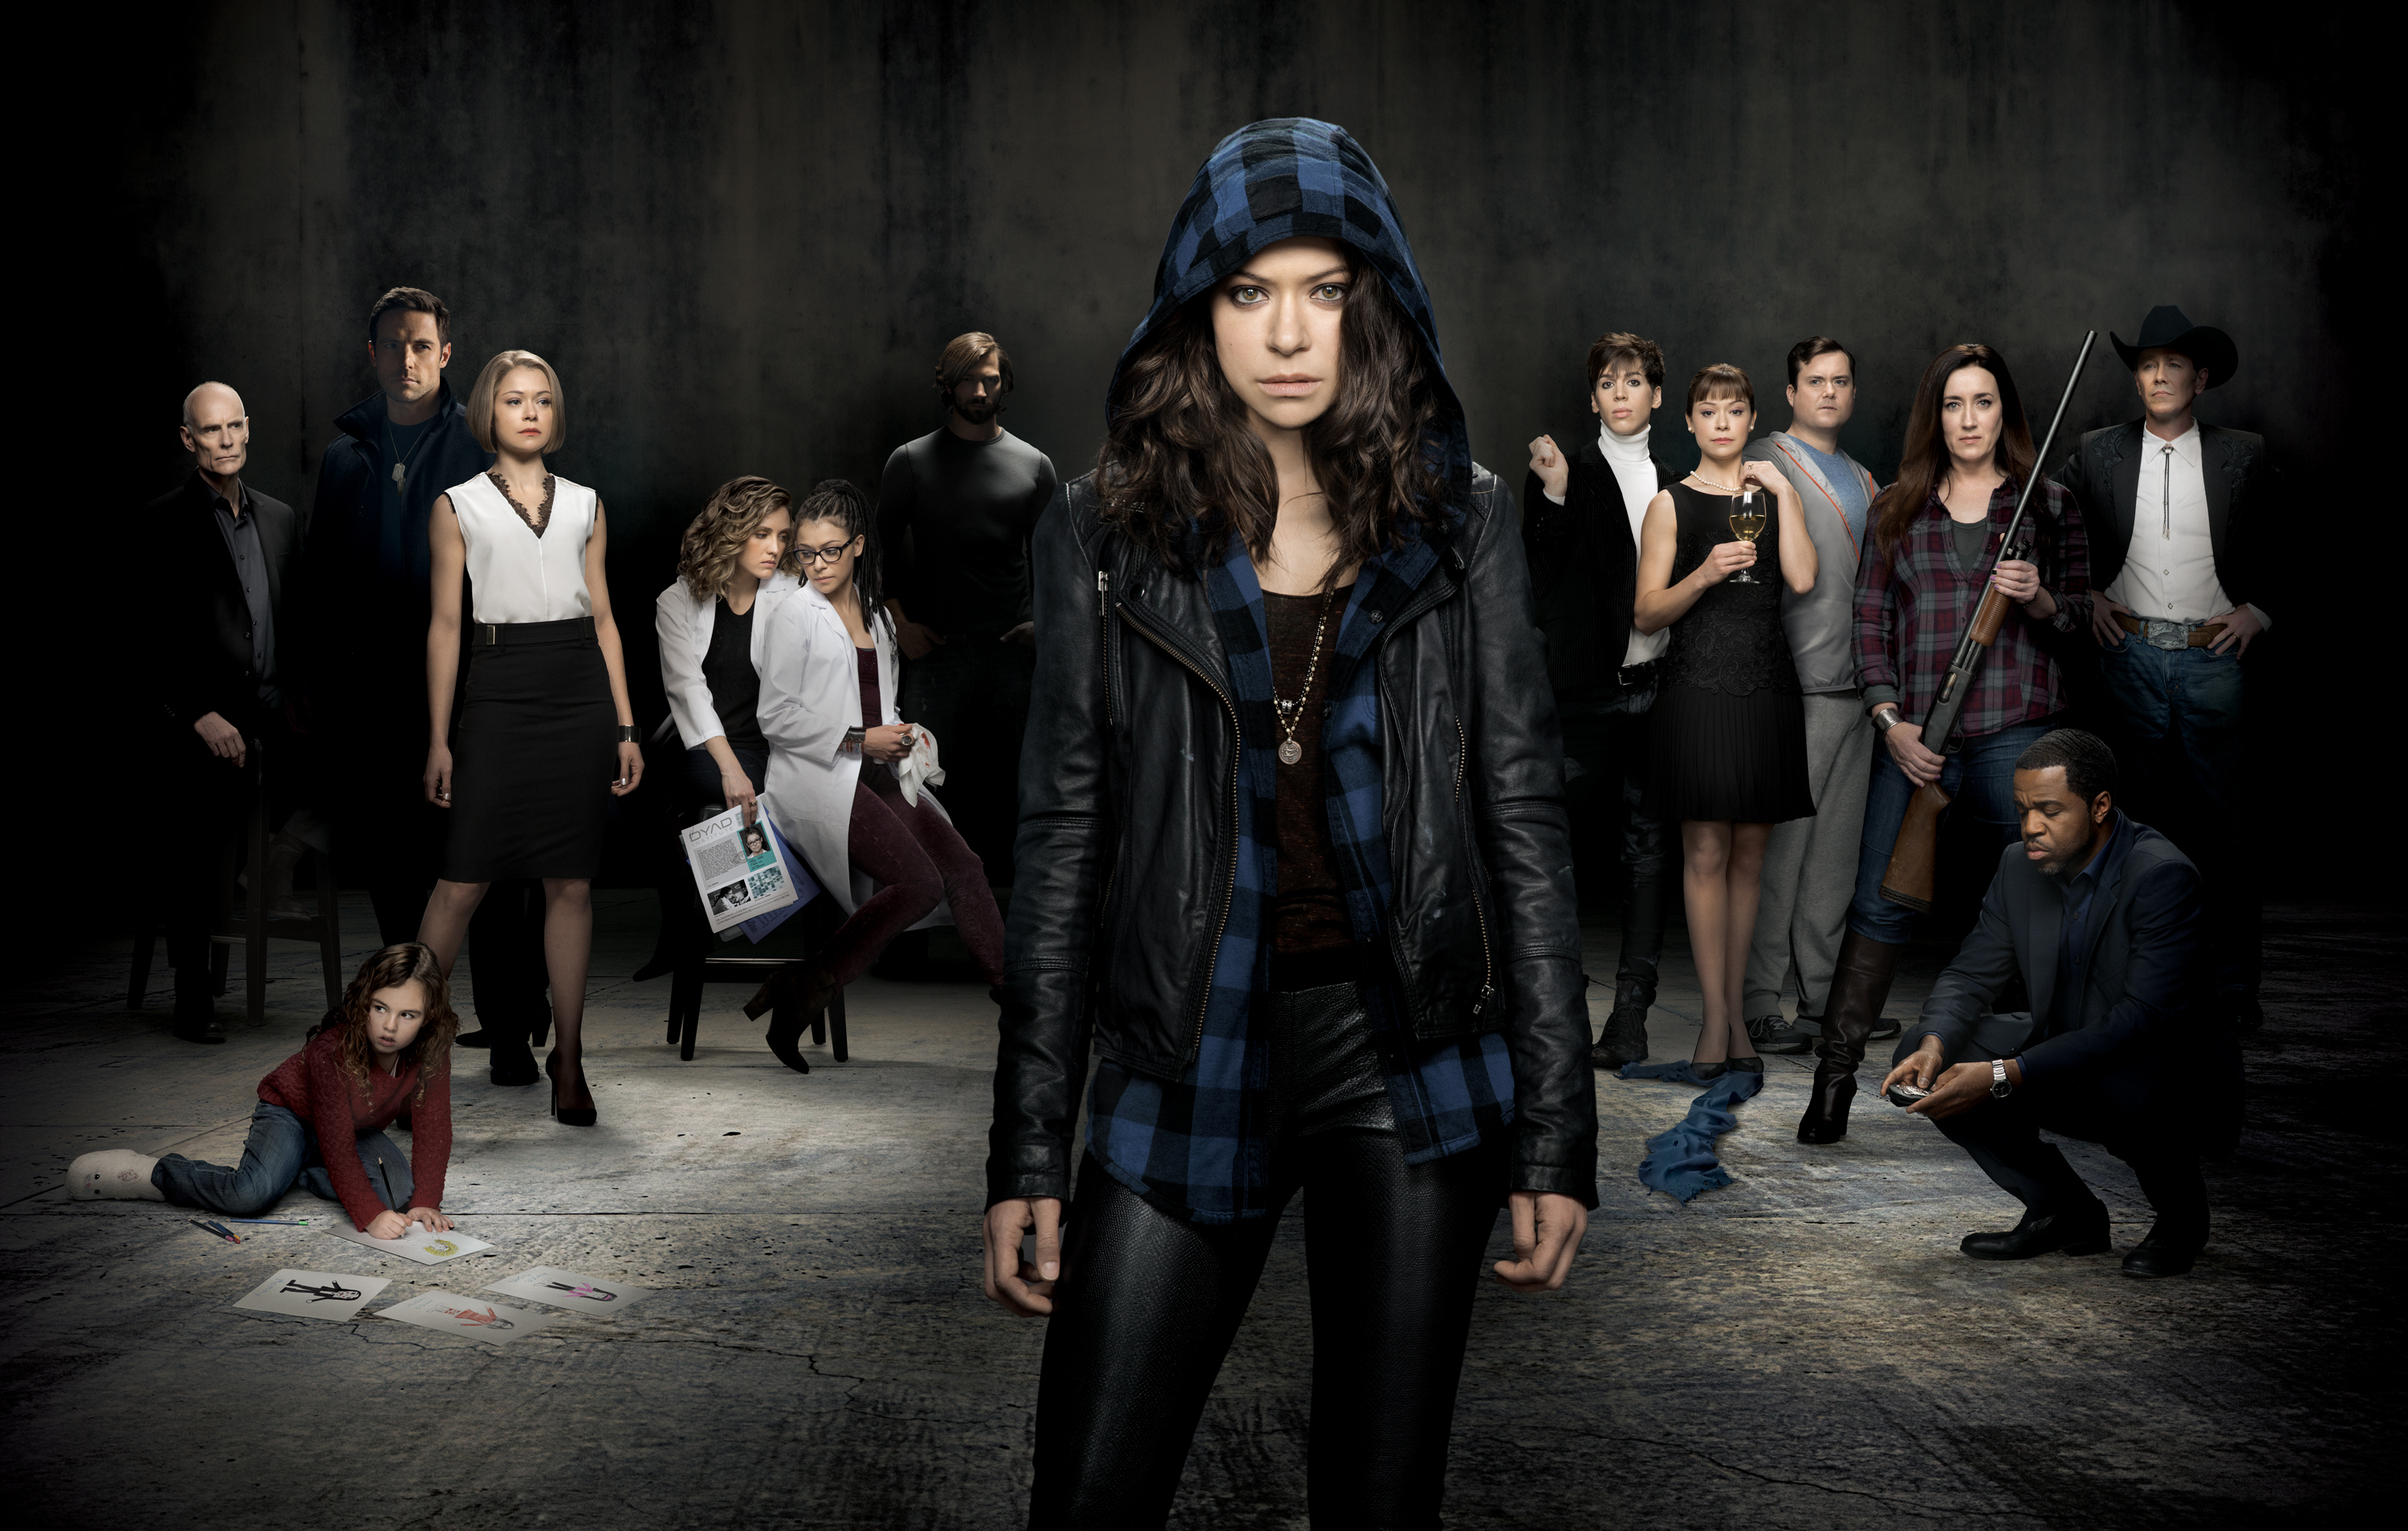 Orphan Black Season 3 Trailer Is Here And Warns 'This Is War'